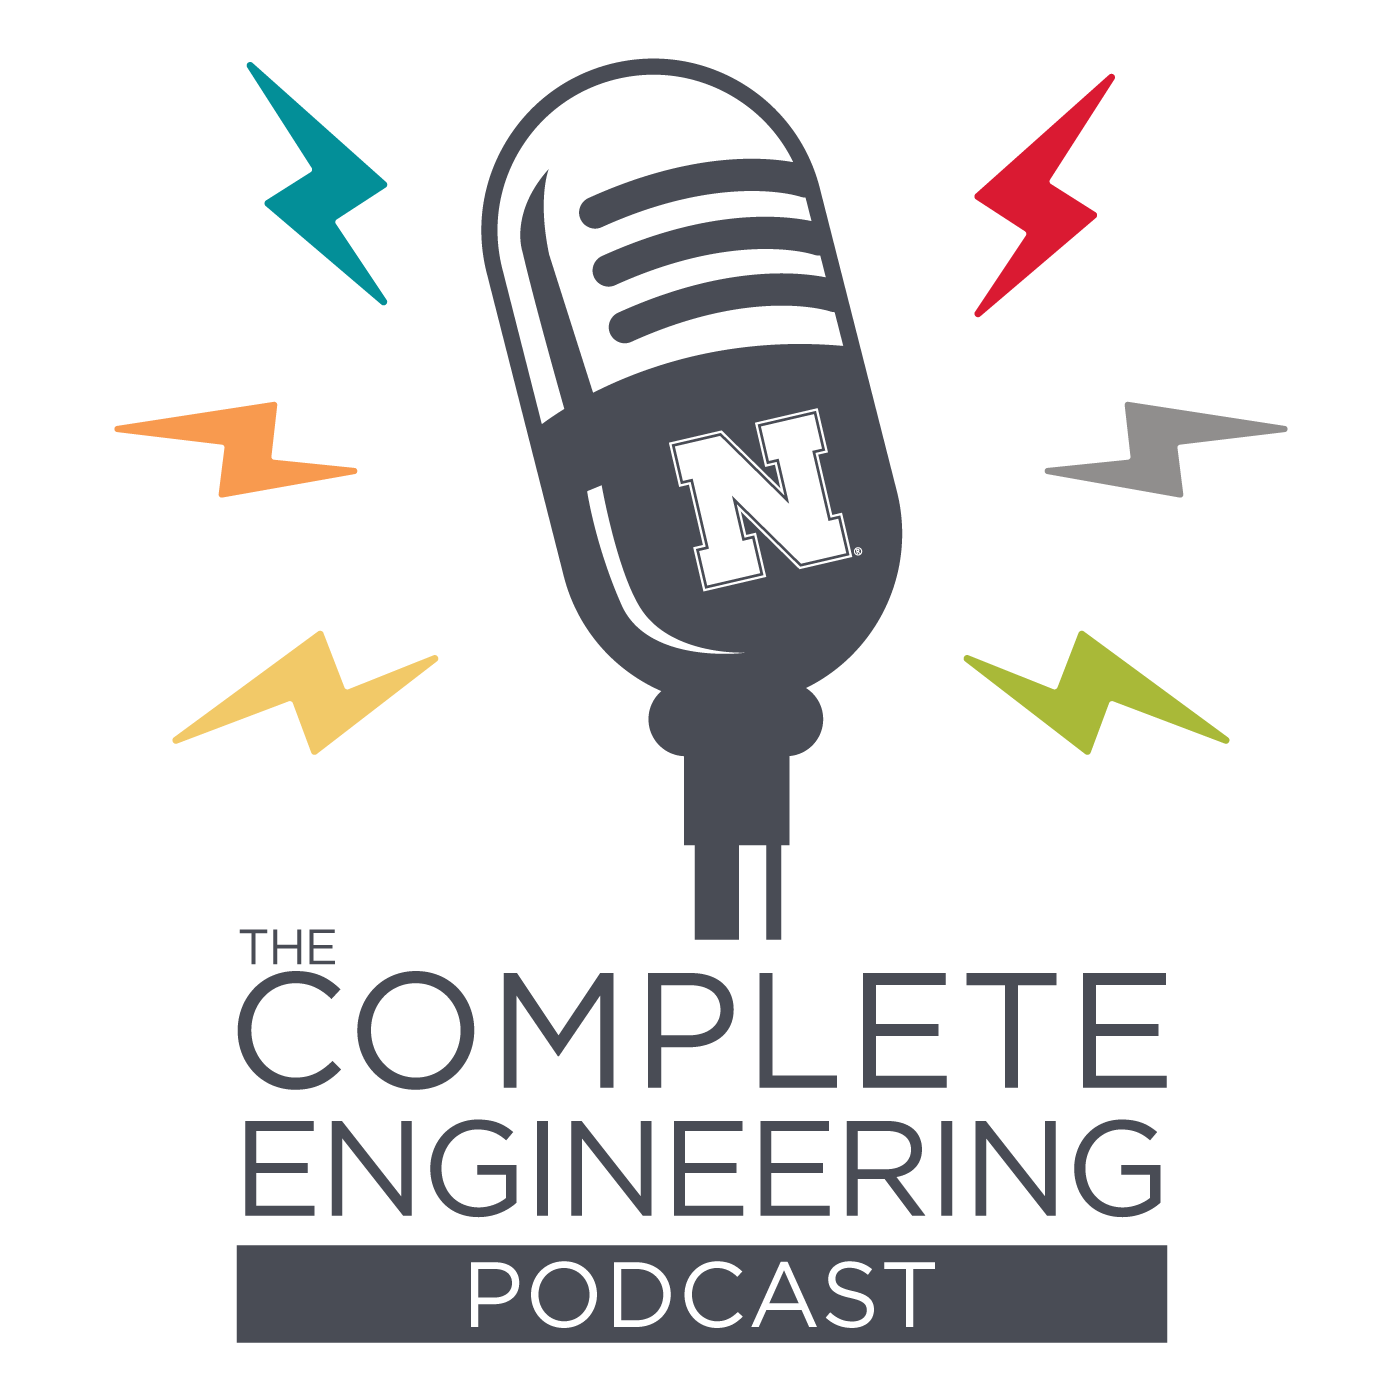 The Complete Engineering Podcast Image